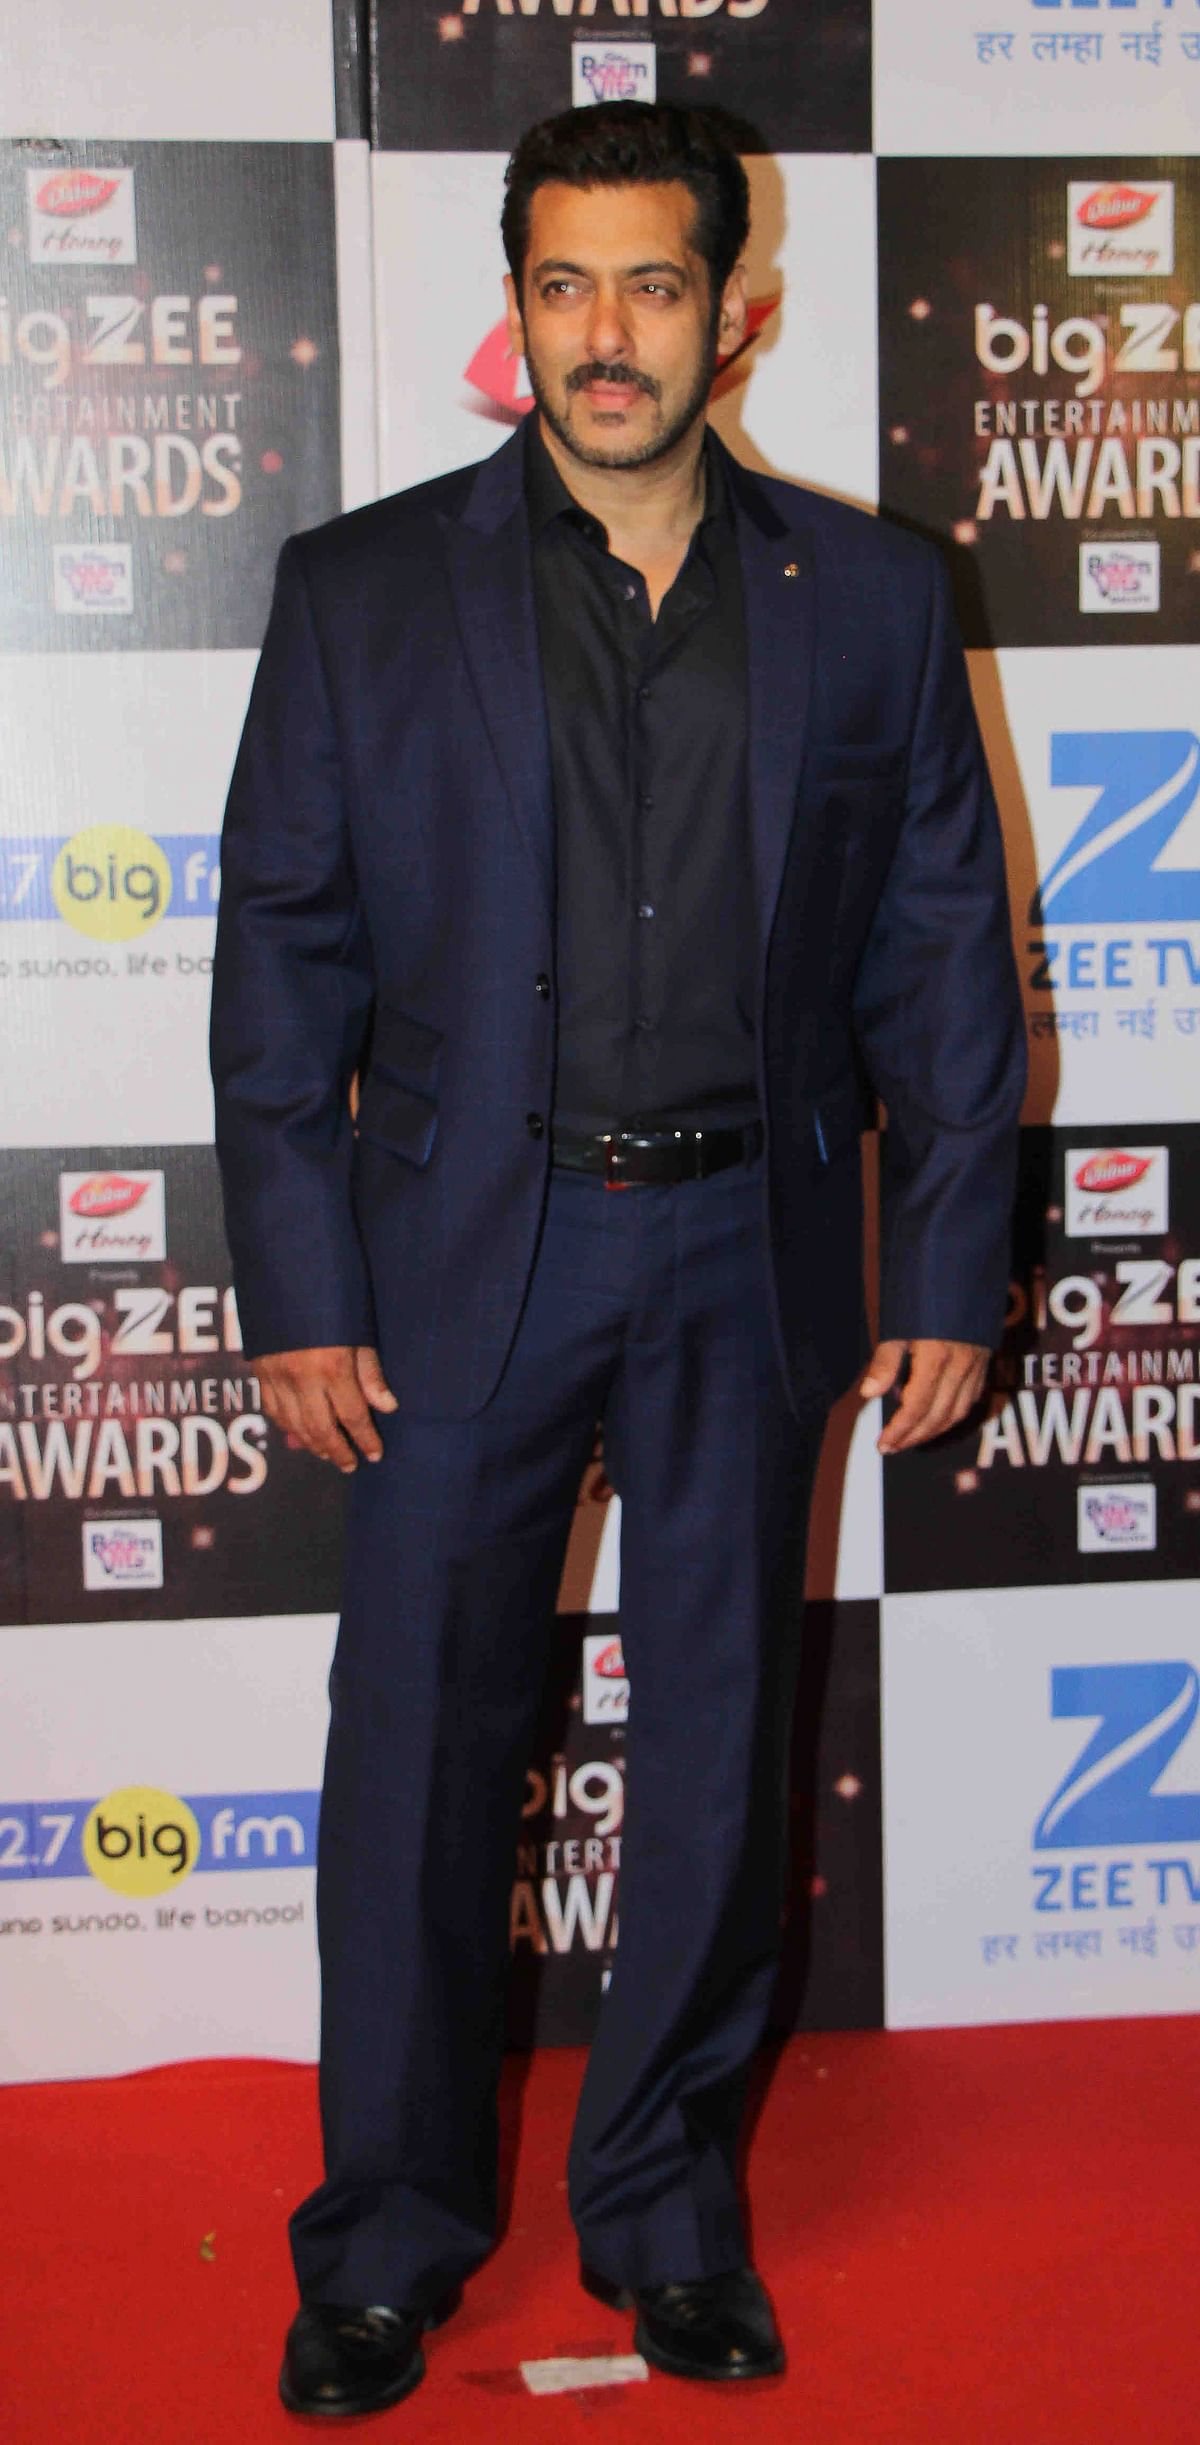 In this photograph taken on July 29, 2017, Indian Bollywood actor Salman Khan attends the BIG ZEE Entertainment Awards 2017 ceremony in Mumbai. / AFP PHOTO / STR